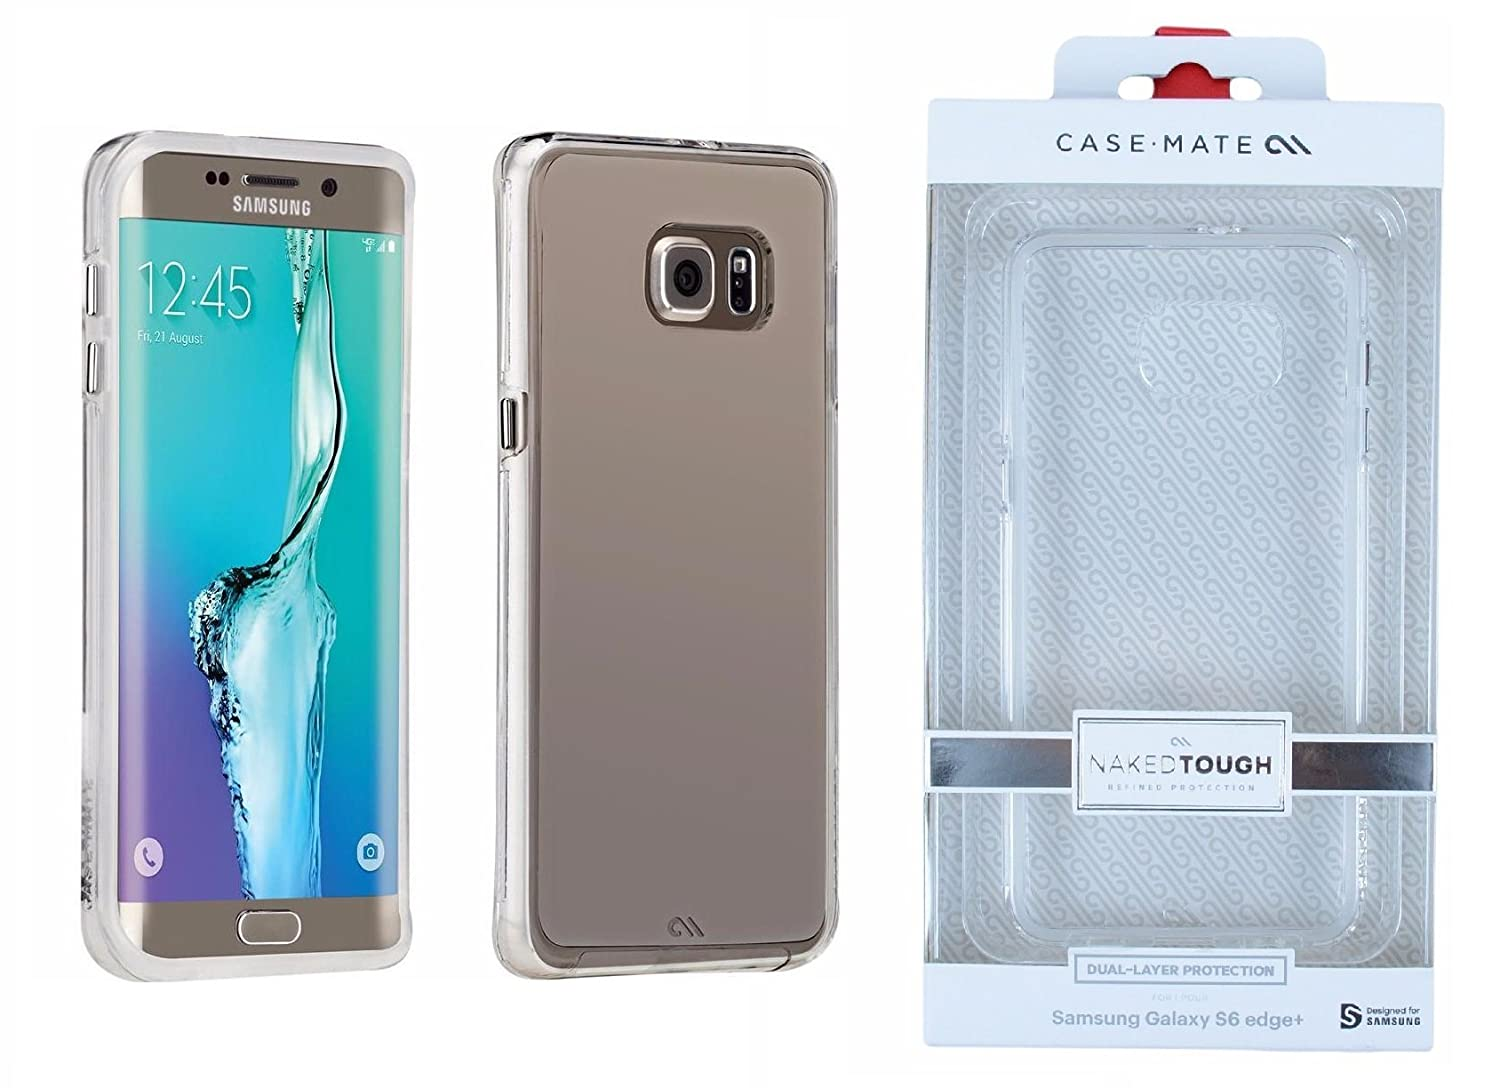 best service 67c2e c1011 Case-Mate Naked Tough Cell Phone Case for Samsung Galaxy S6 Edge Plus -  Retail Packaging - Clear